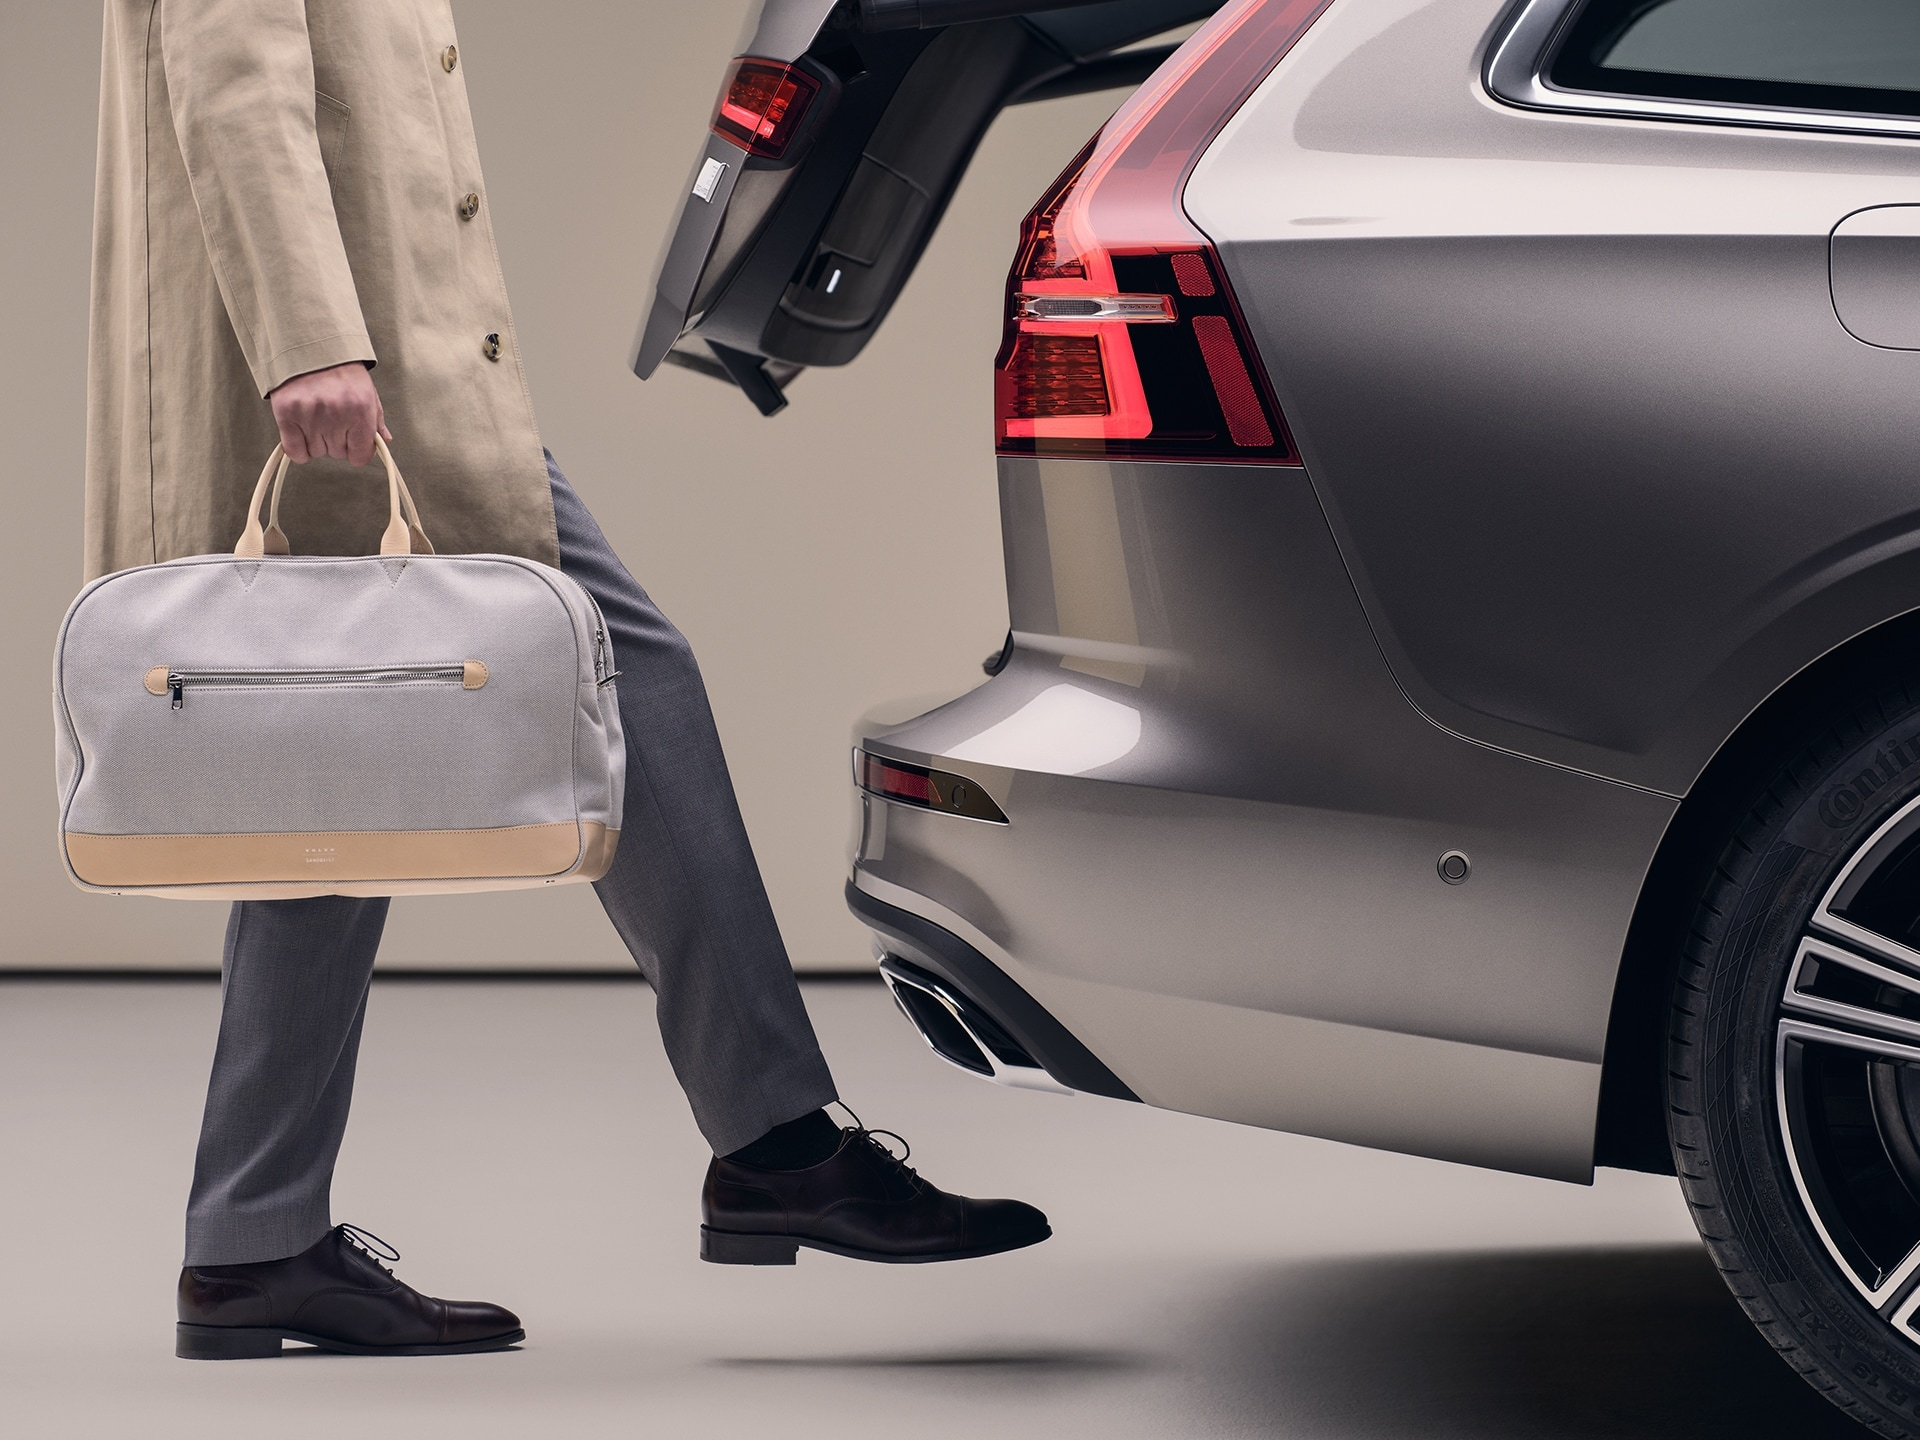 A man with a sports bag in his hand moves his foot under the rear bumper to open the hands-free tailgate.